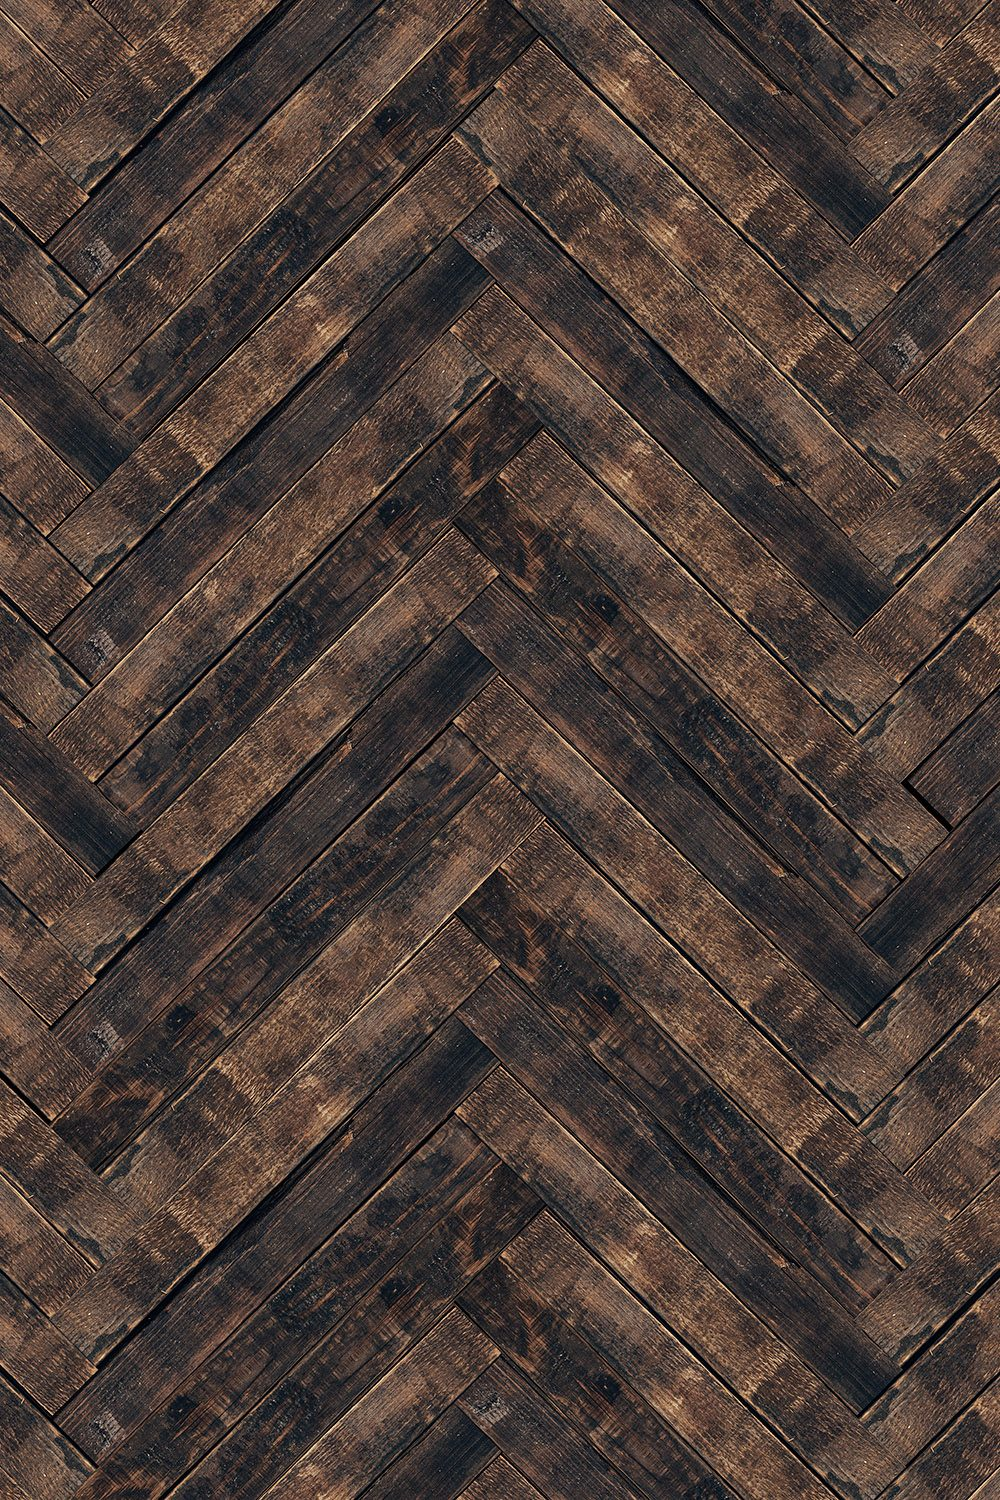 Vintage Herringbone Printed Vinyl Backdrop